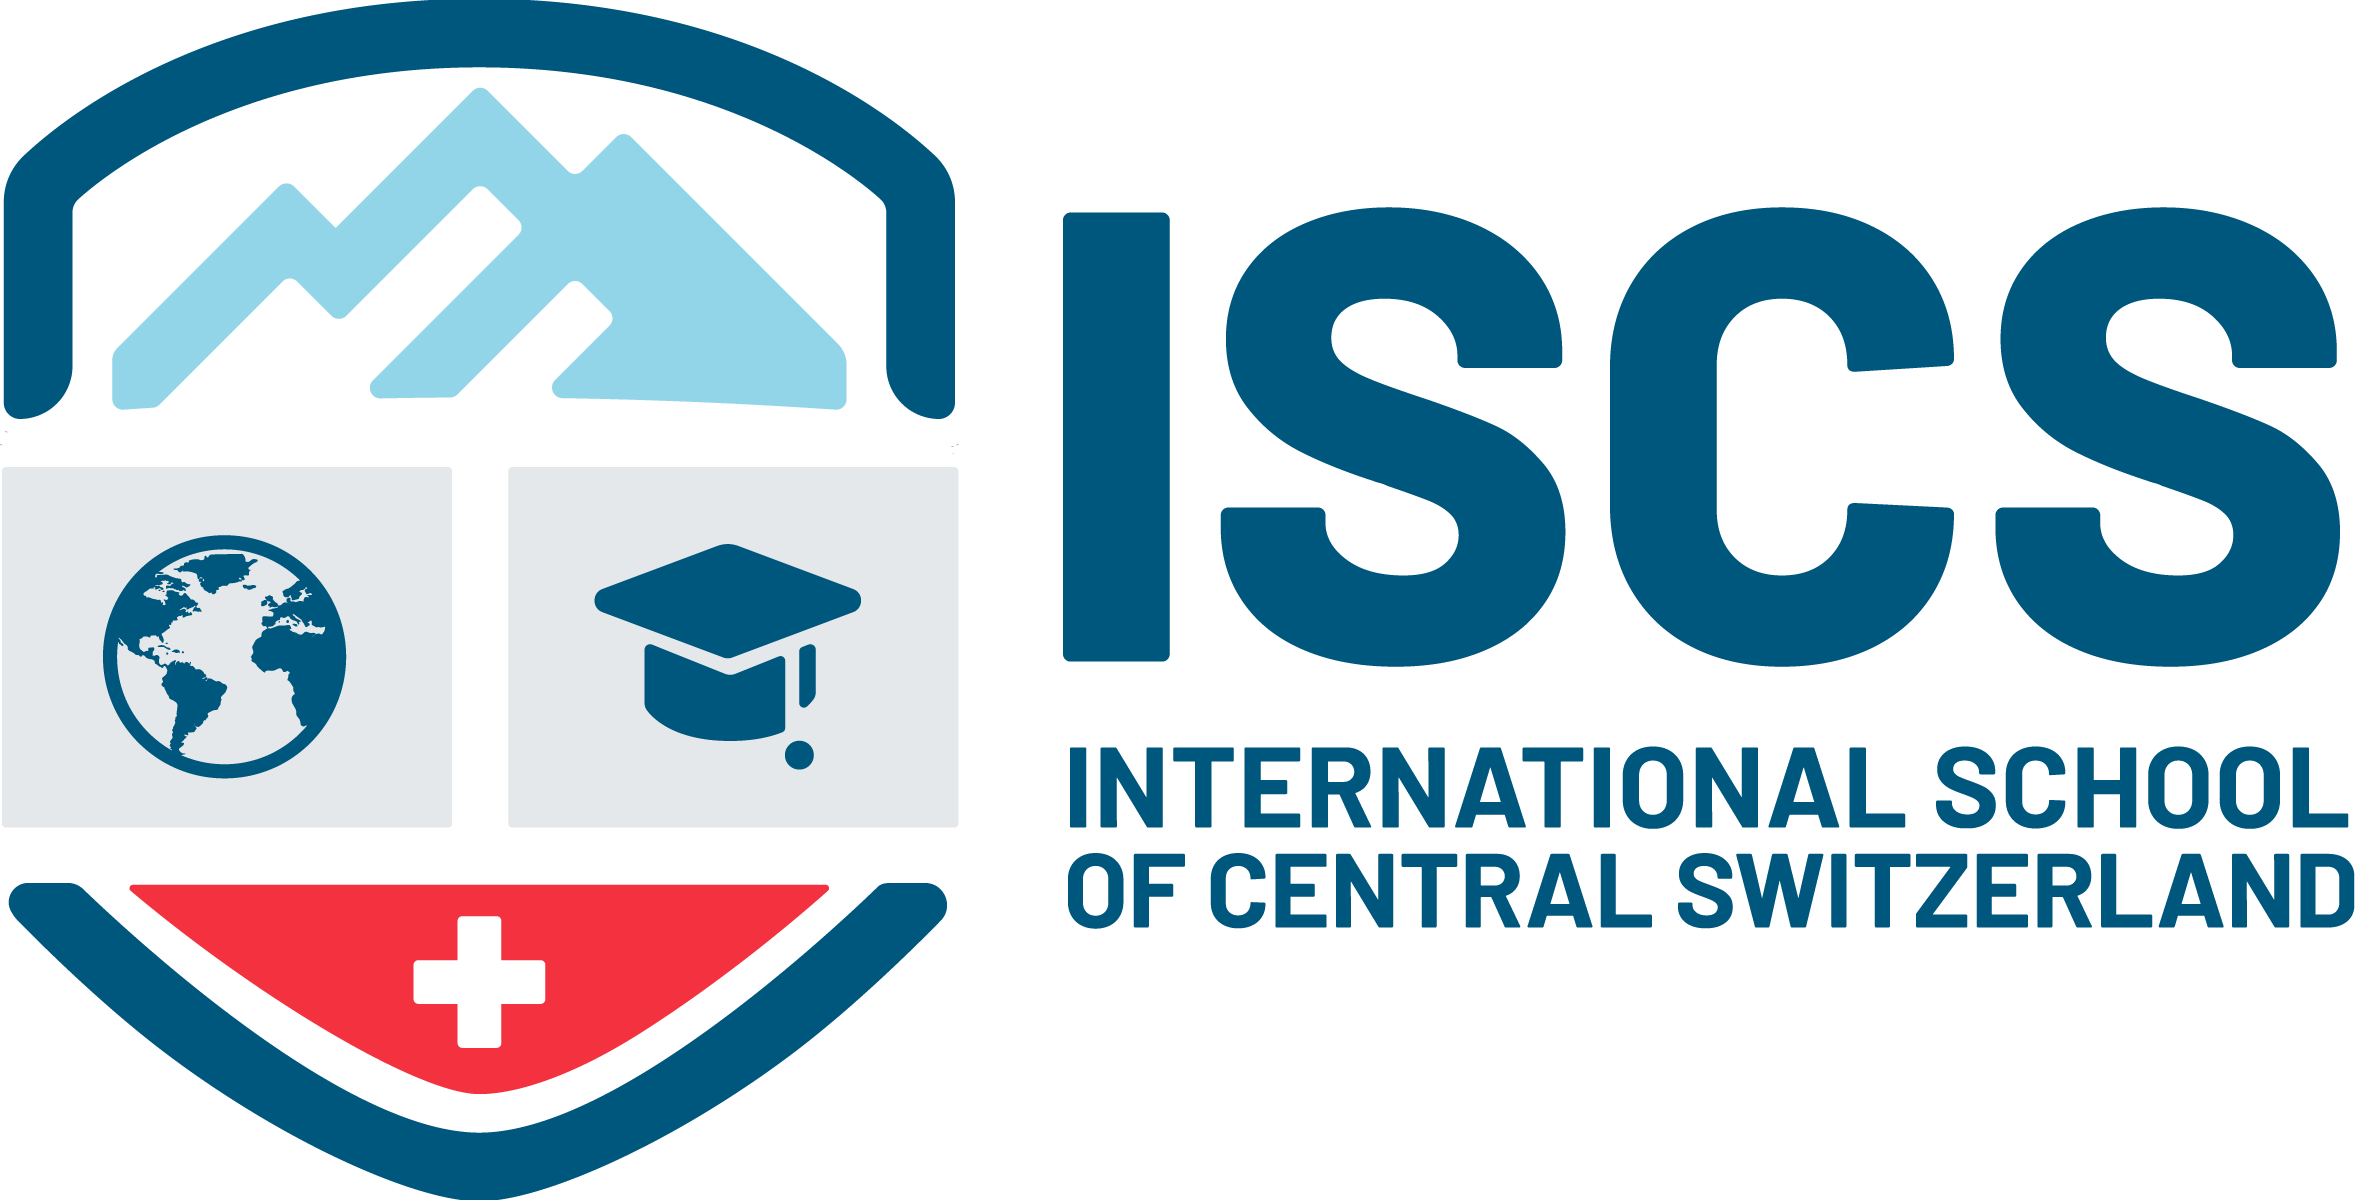 International School of Central Switzerland